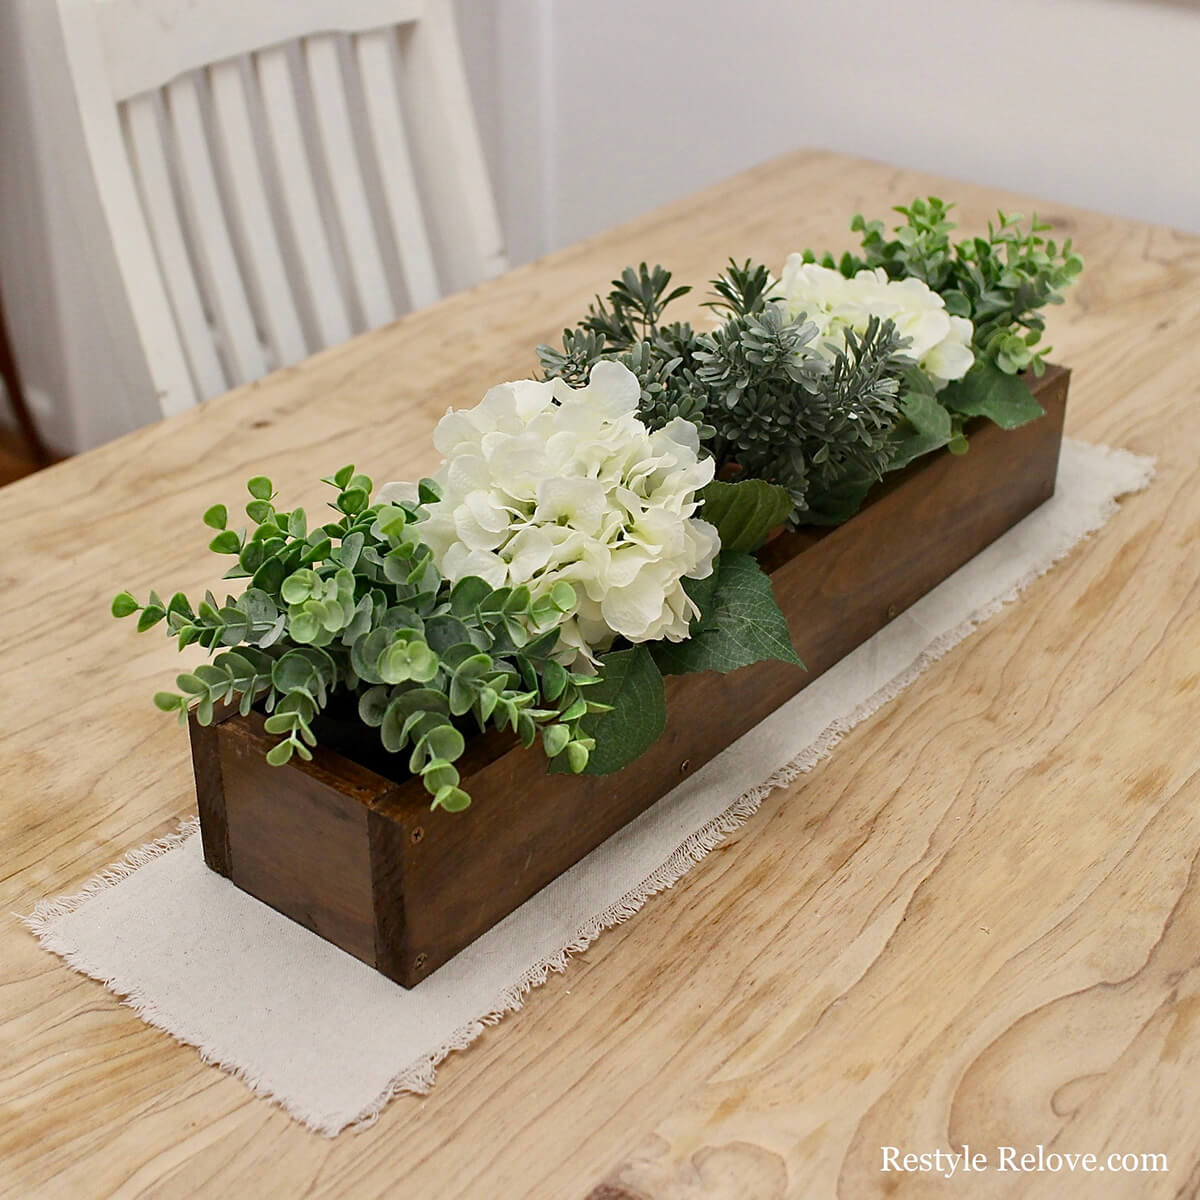 15 Great Diy Farmhouse Decor Ideas That You Must Try: DIY Tiered Flowerbox Centerpiece